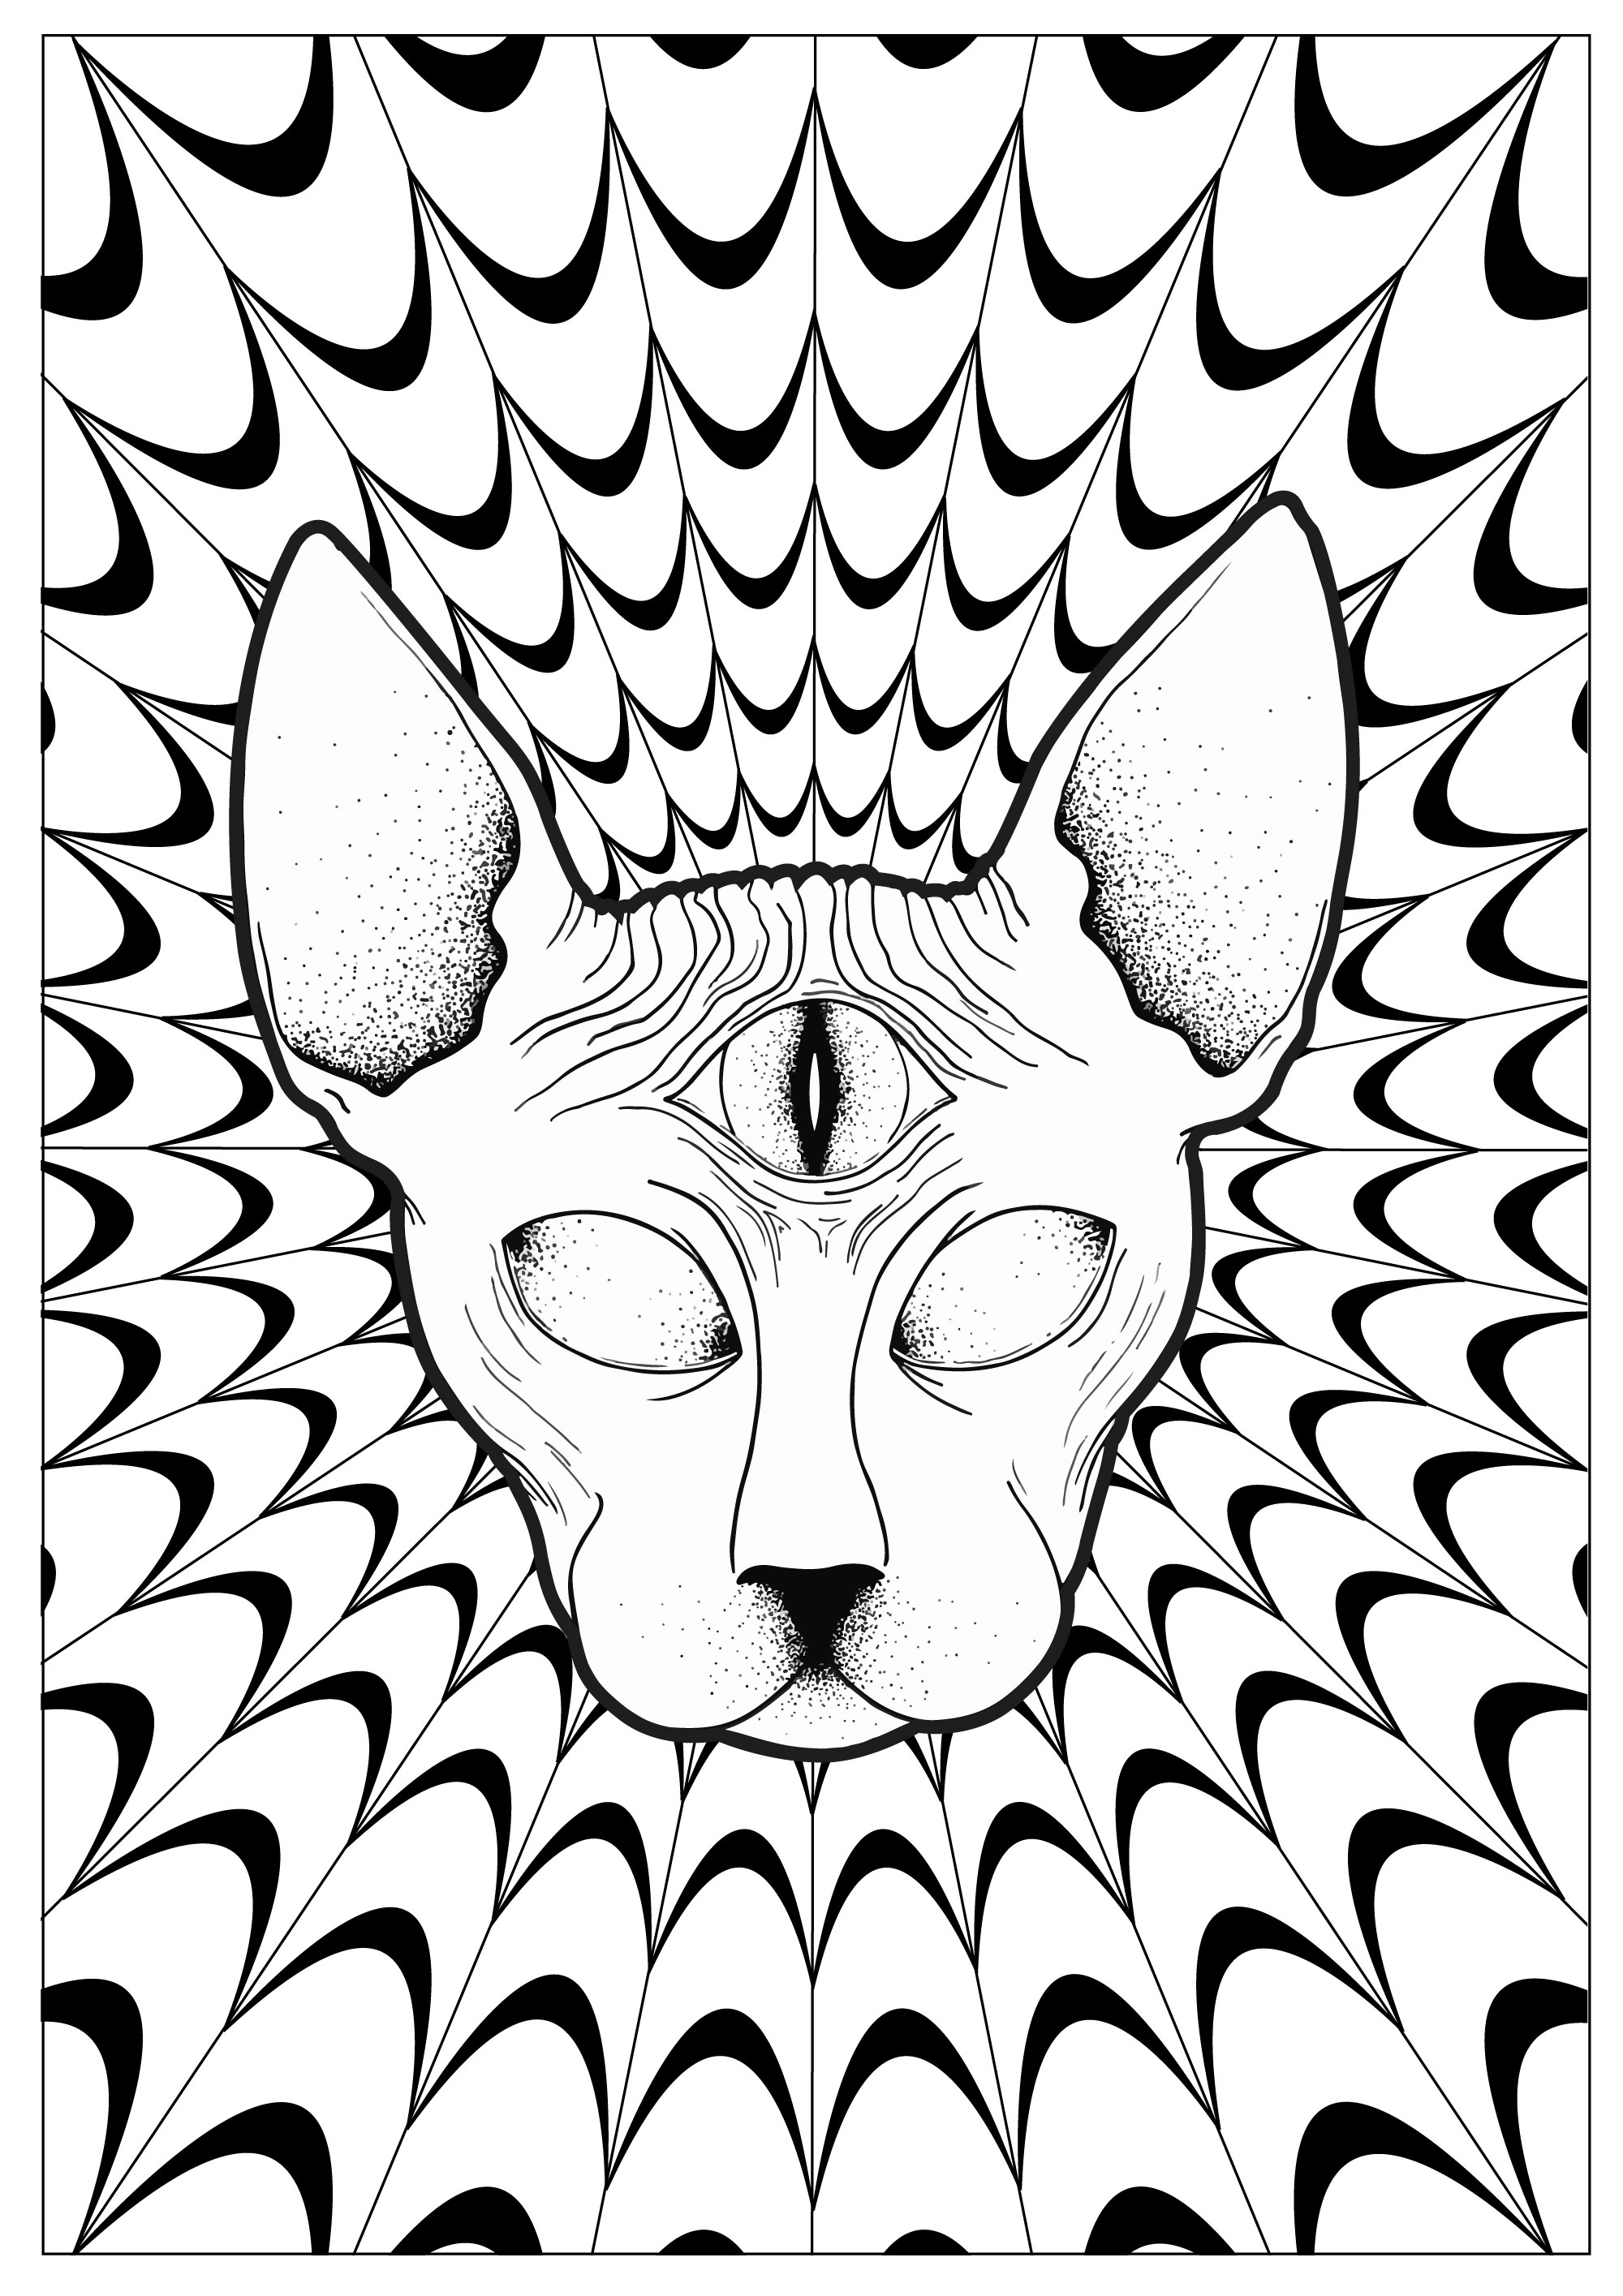 Psychedelic - Coloring Pages For Adults - Free Printable Trippy Coloring Pages